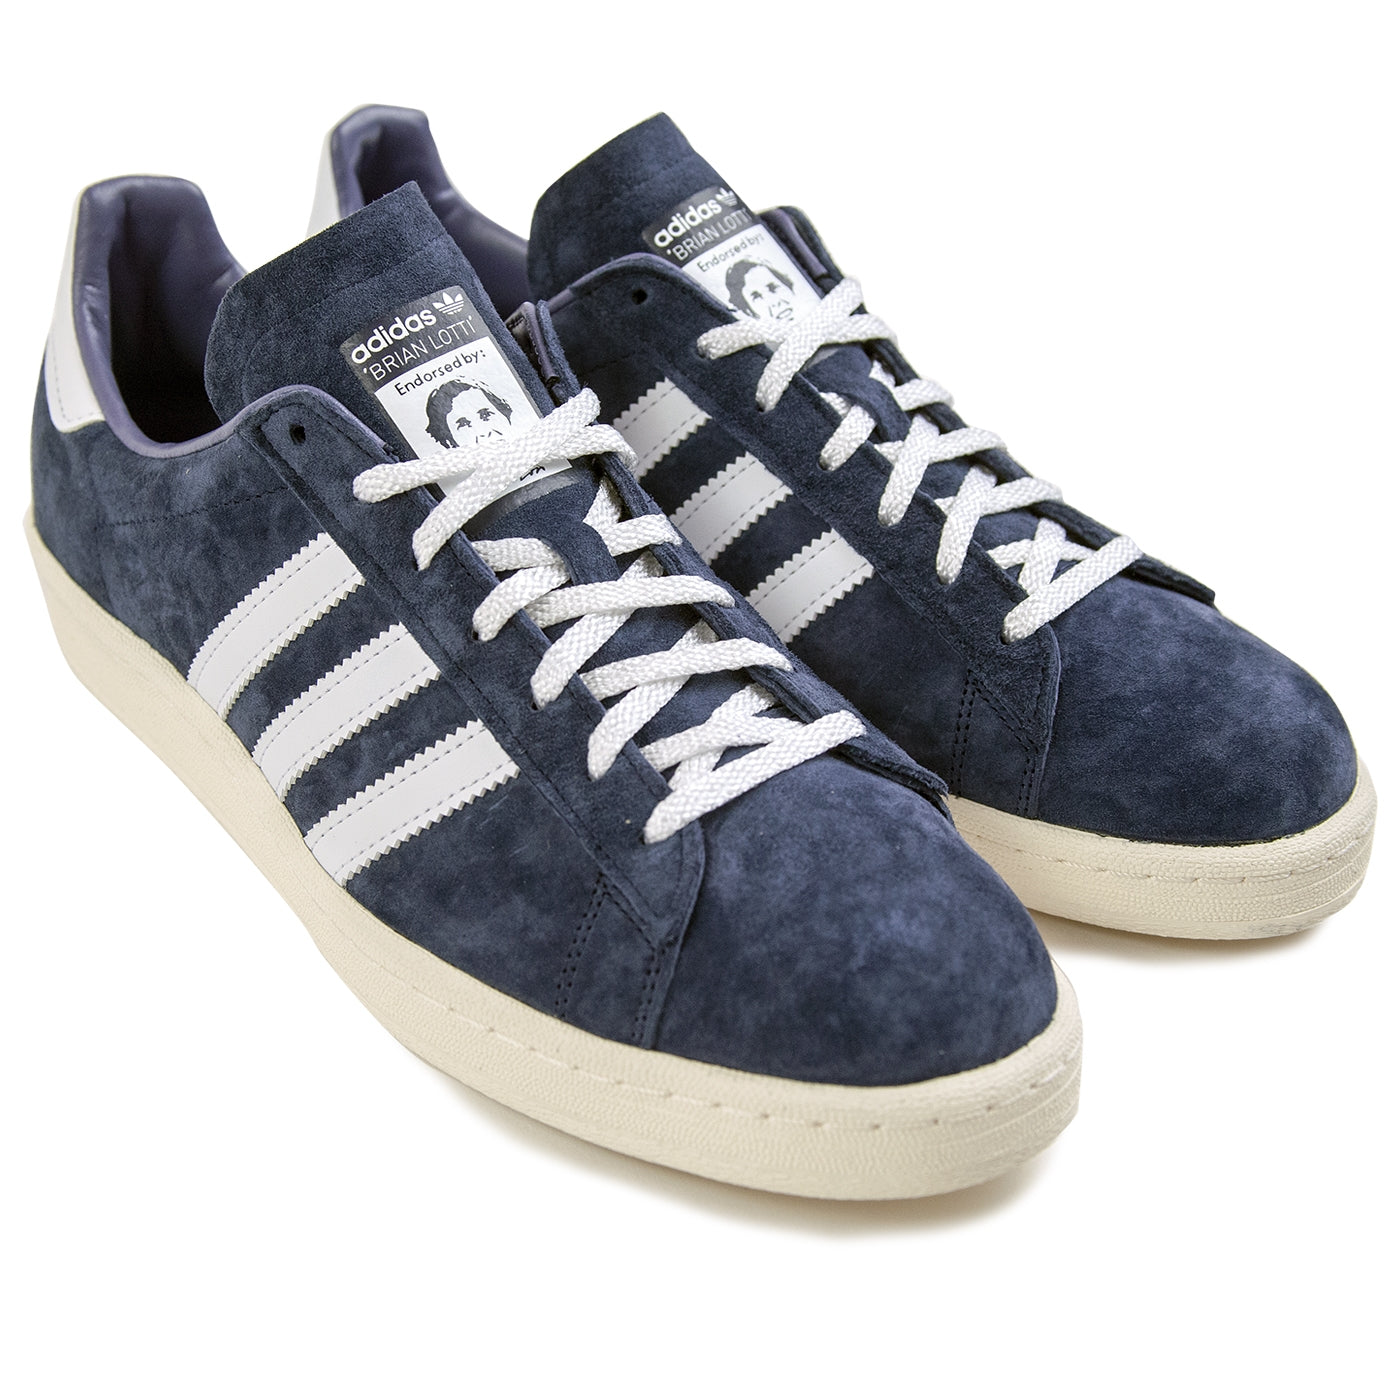 551b5d7e95c Campus 80s RYR Shoes in Collegiate Navy   Footwear White   Chalk ...